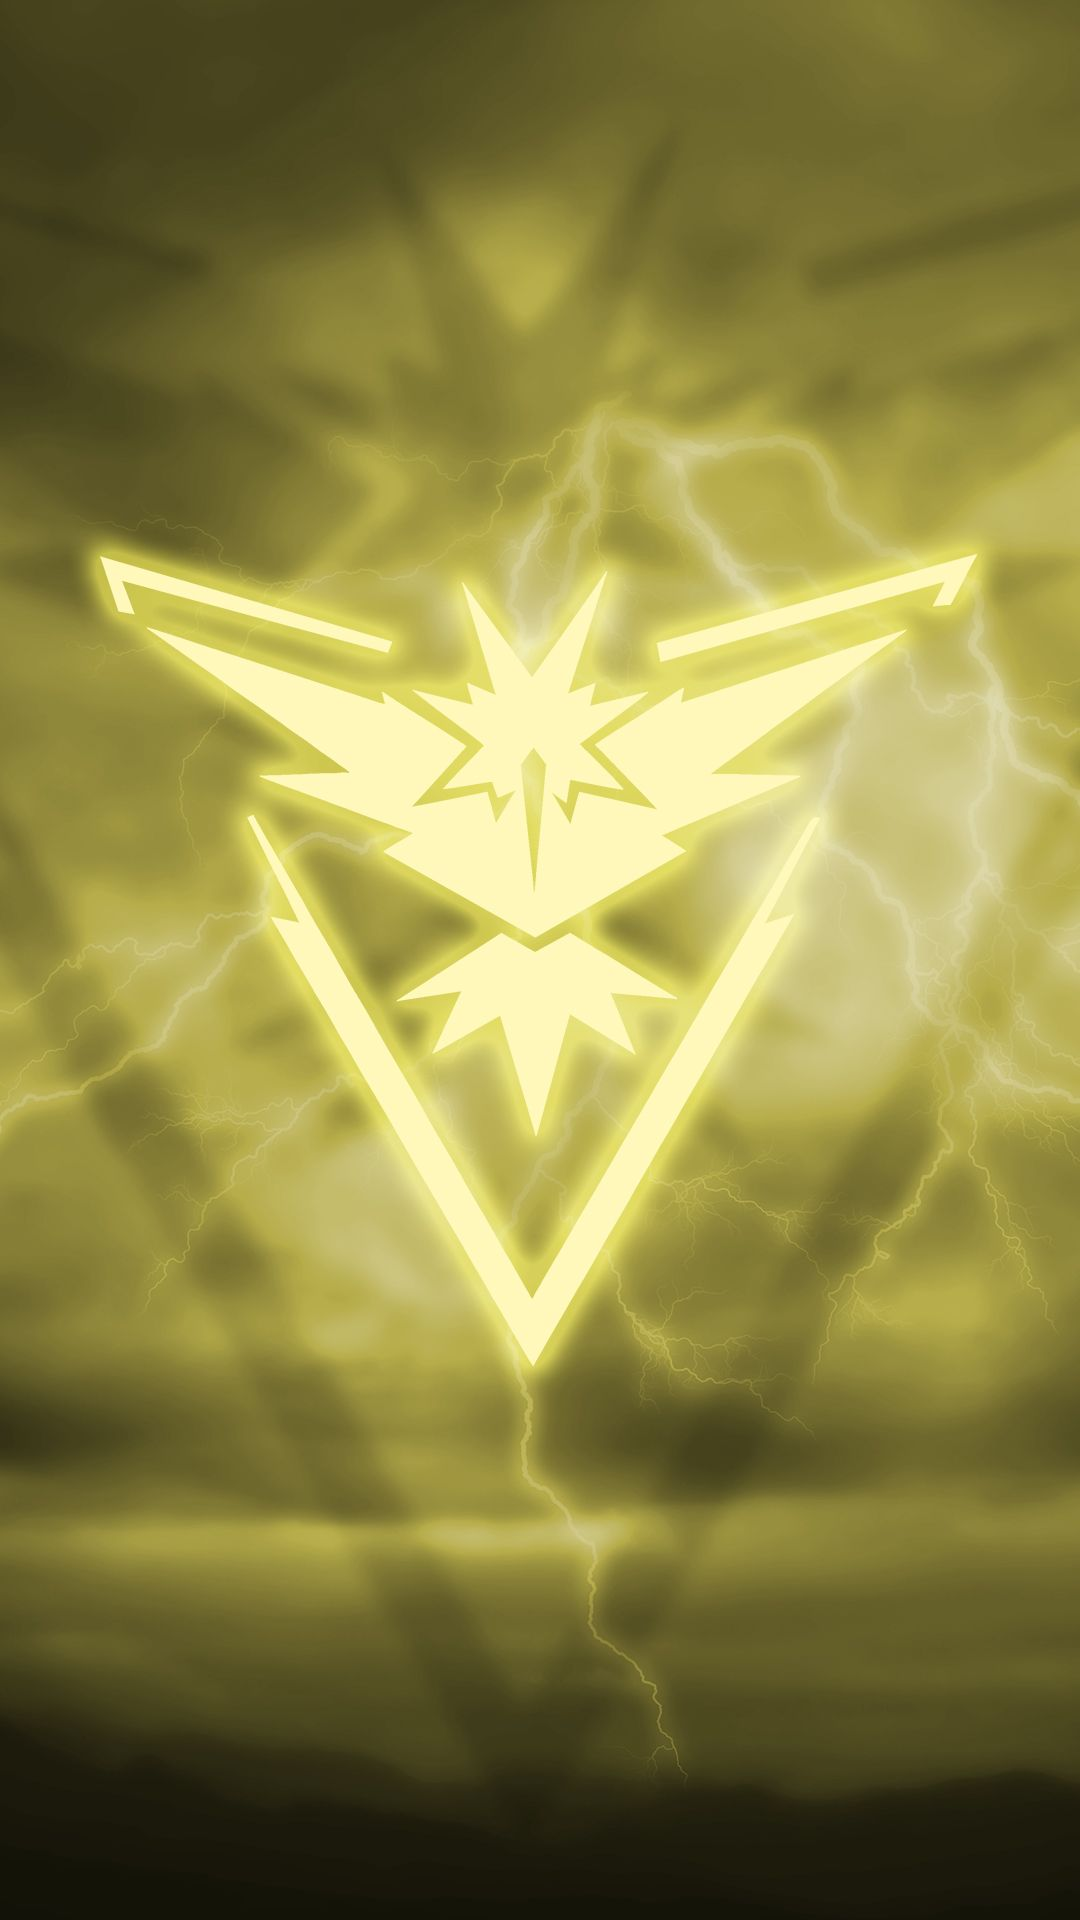 Pokemon Go Team Instinct Wallpaper 1080x1920 Need Iphone 6s